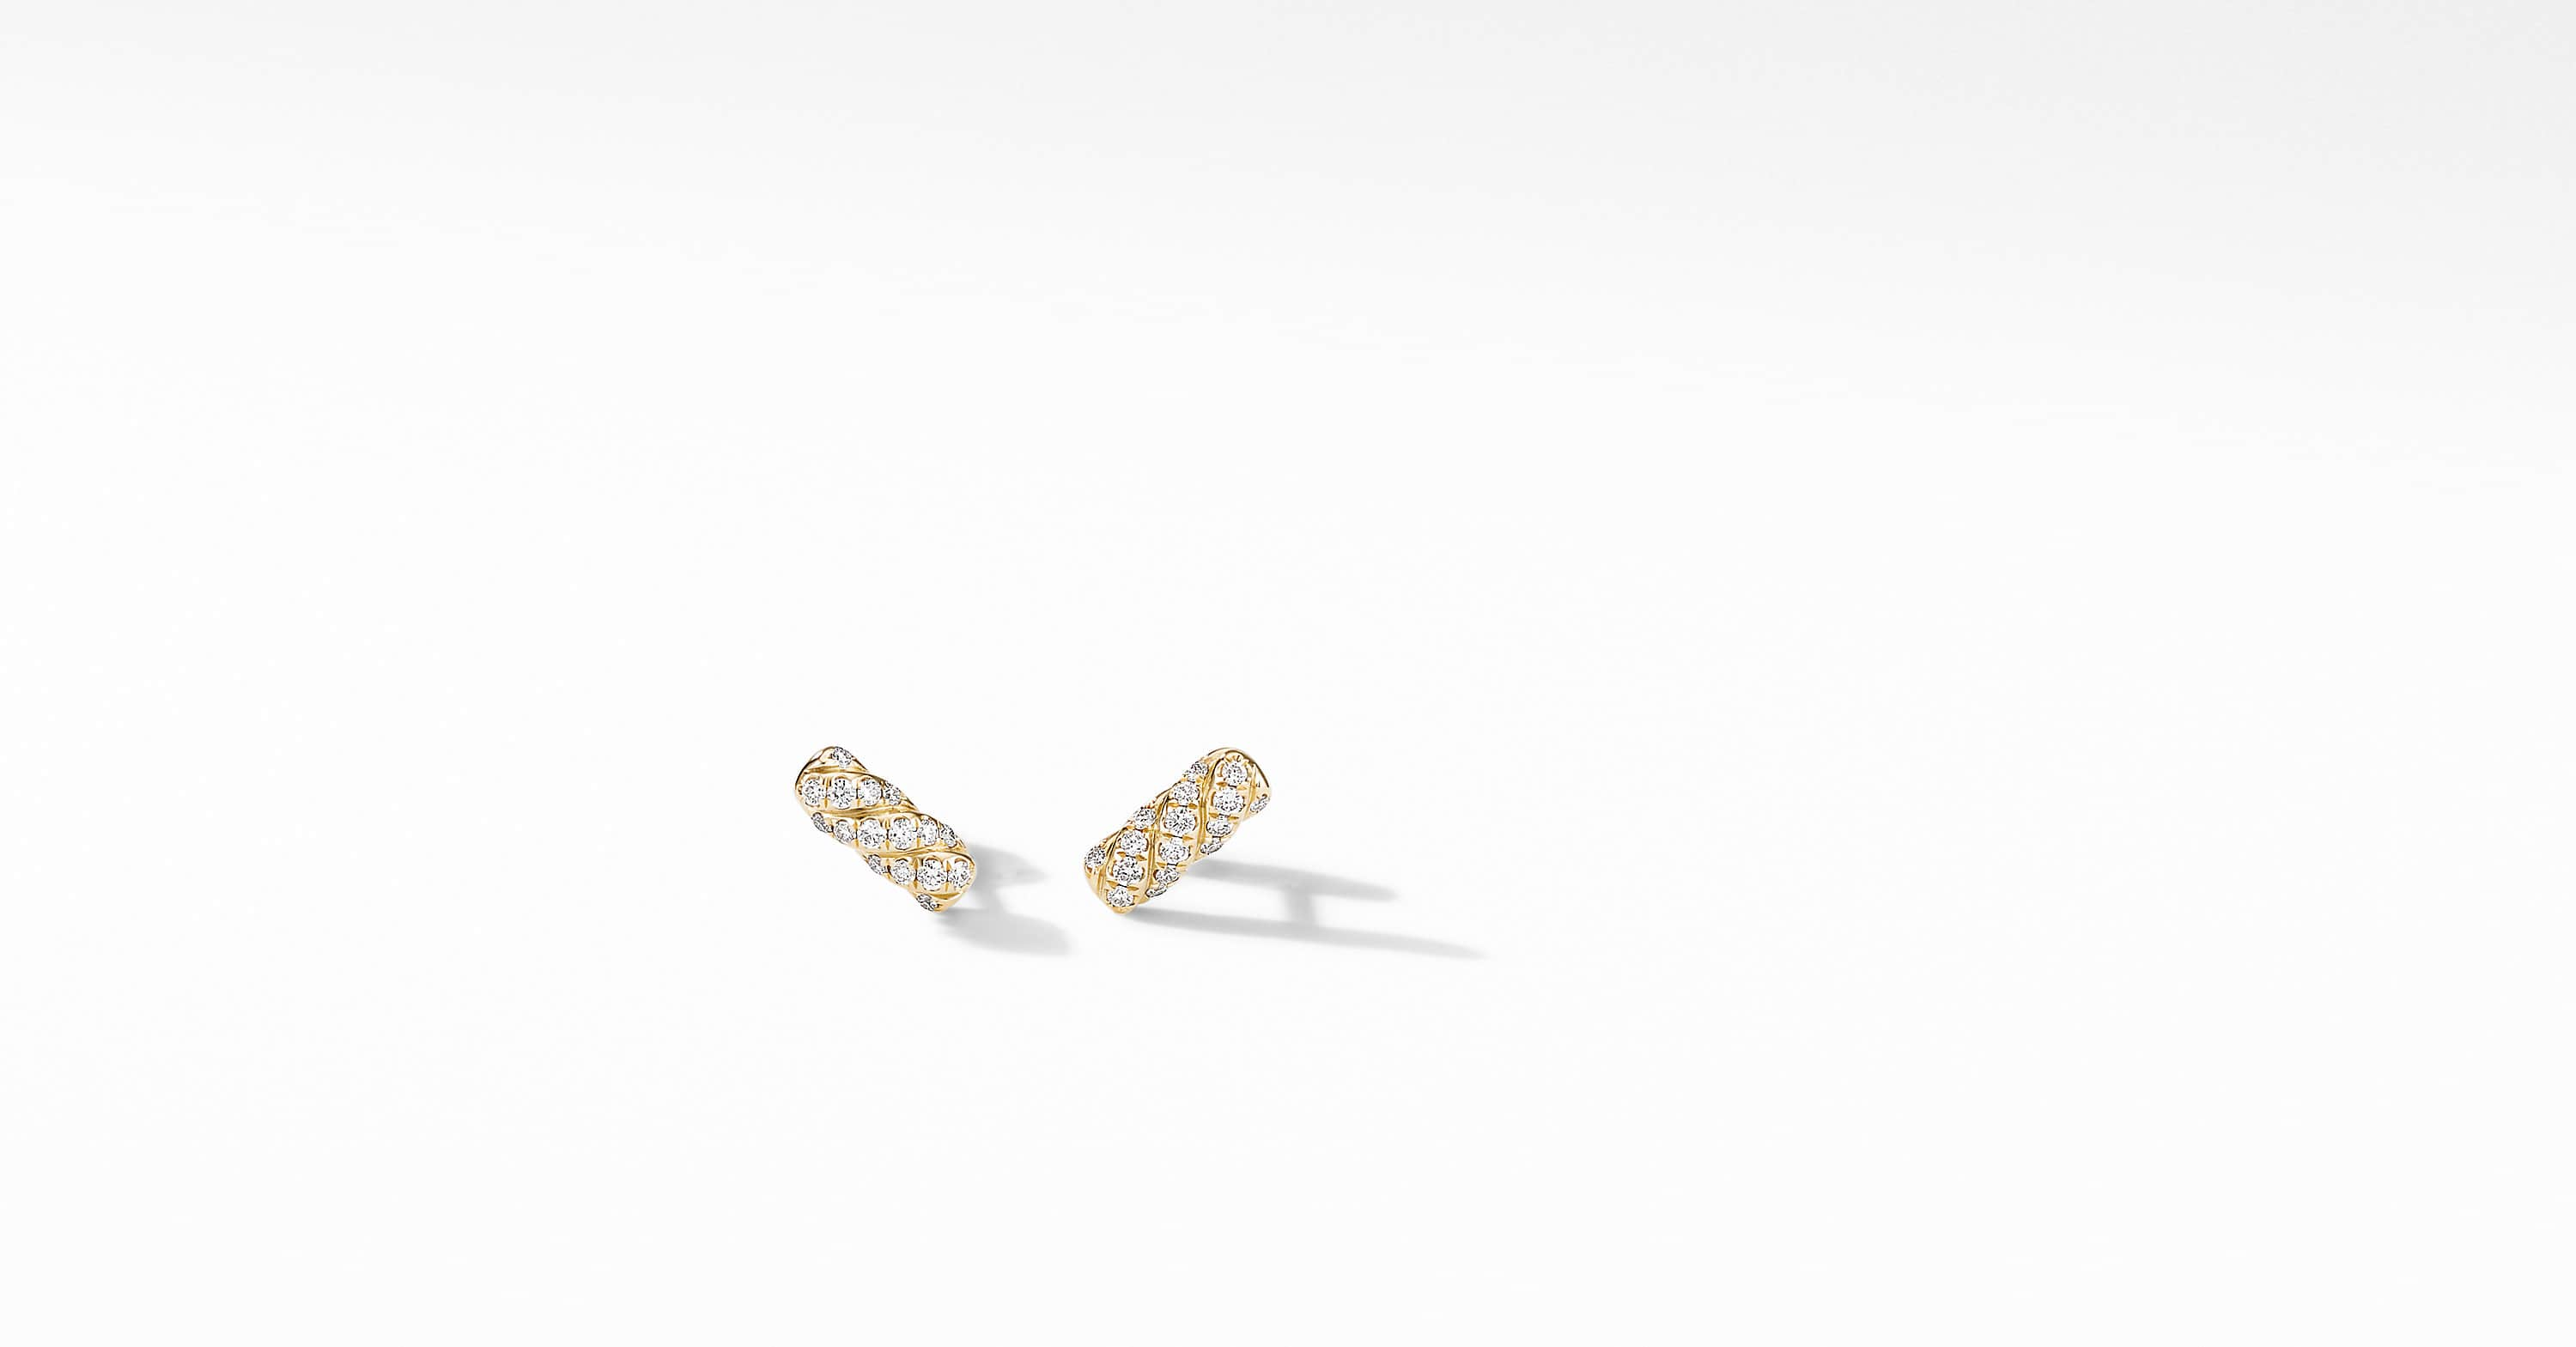 Barrel Stud Earrings in 18K Yellow Gold with Diamonds